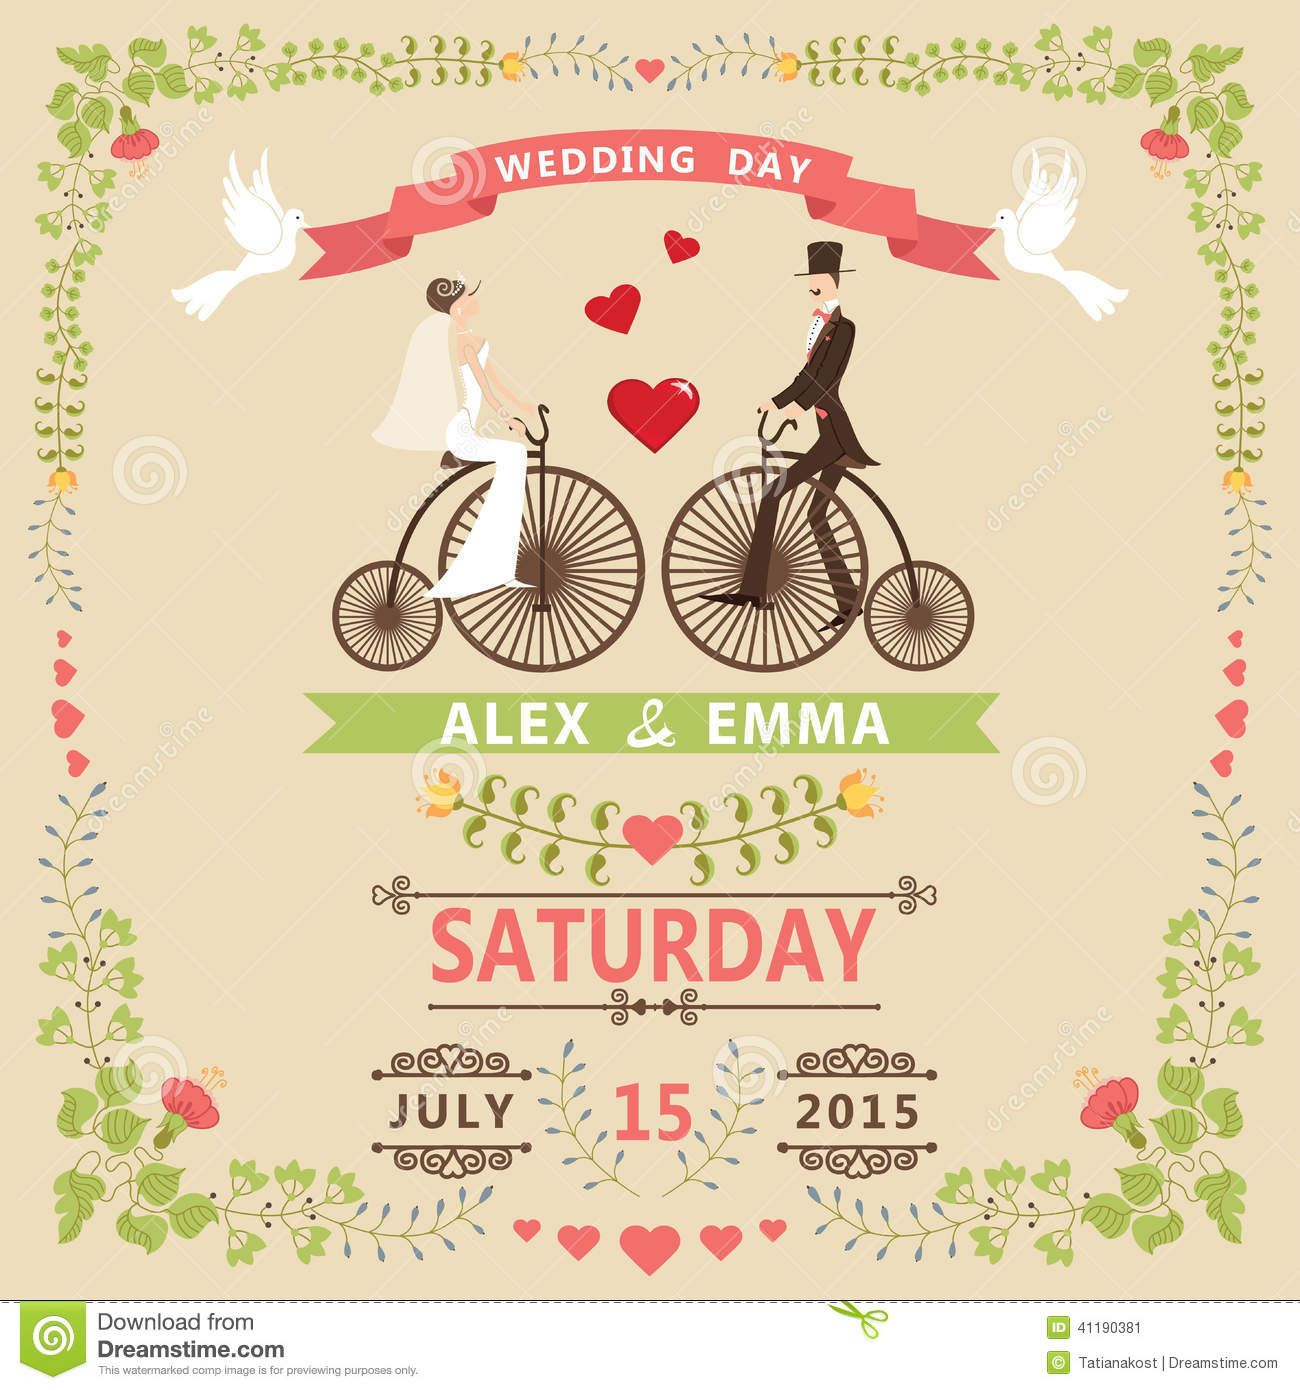 Old bicycle wedding google search vintage bike wedding for Hochzeitseinladungskarten vintage